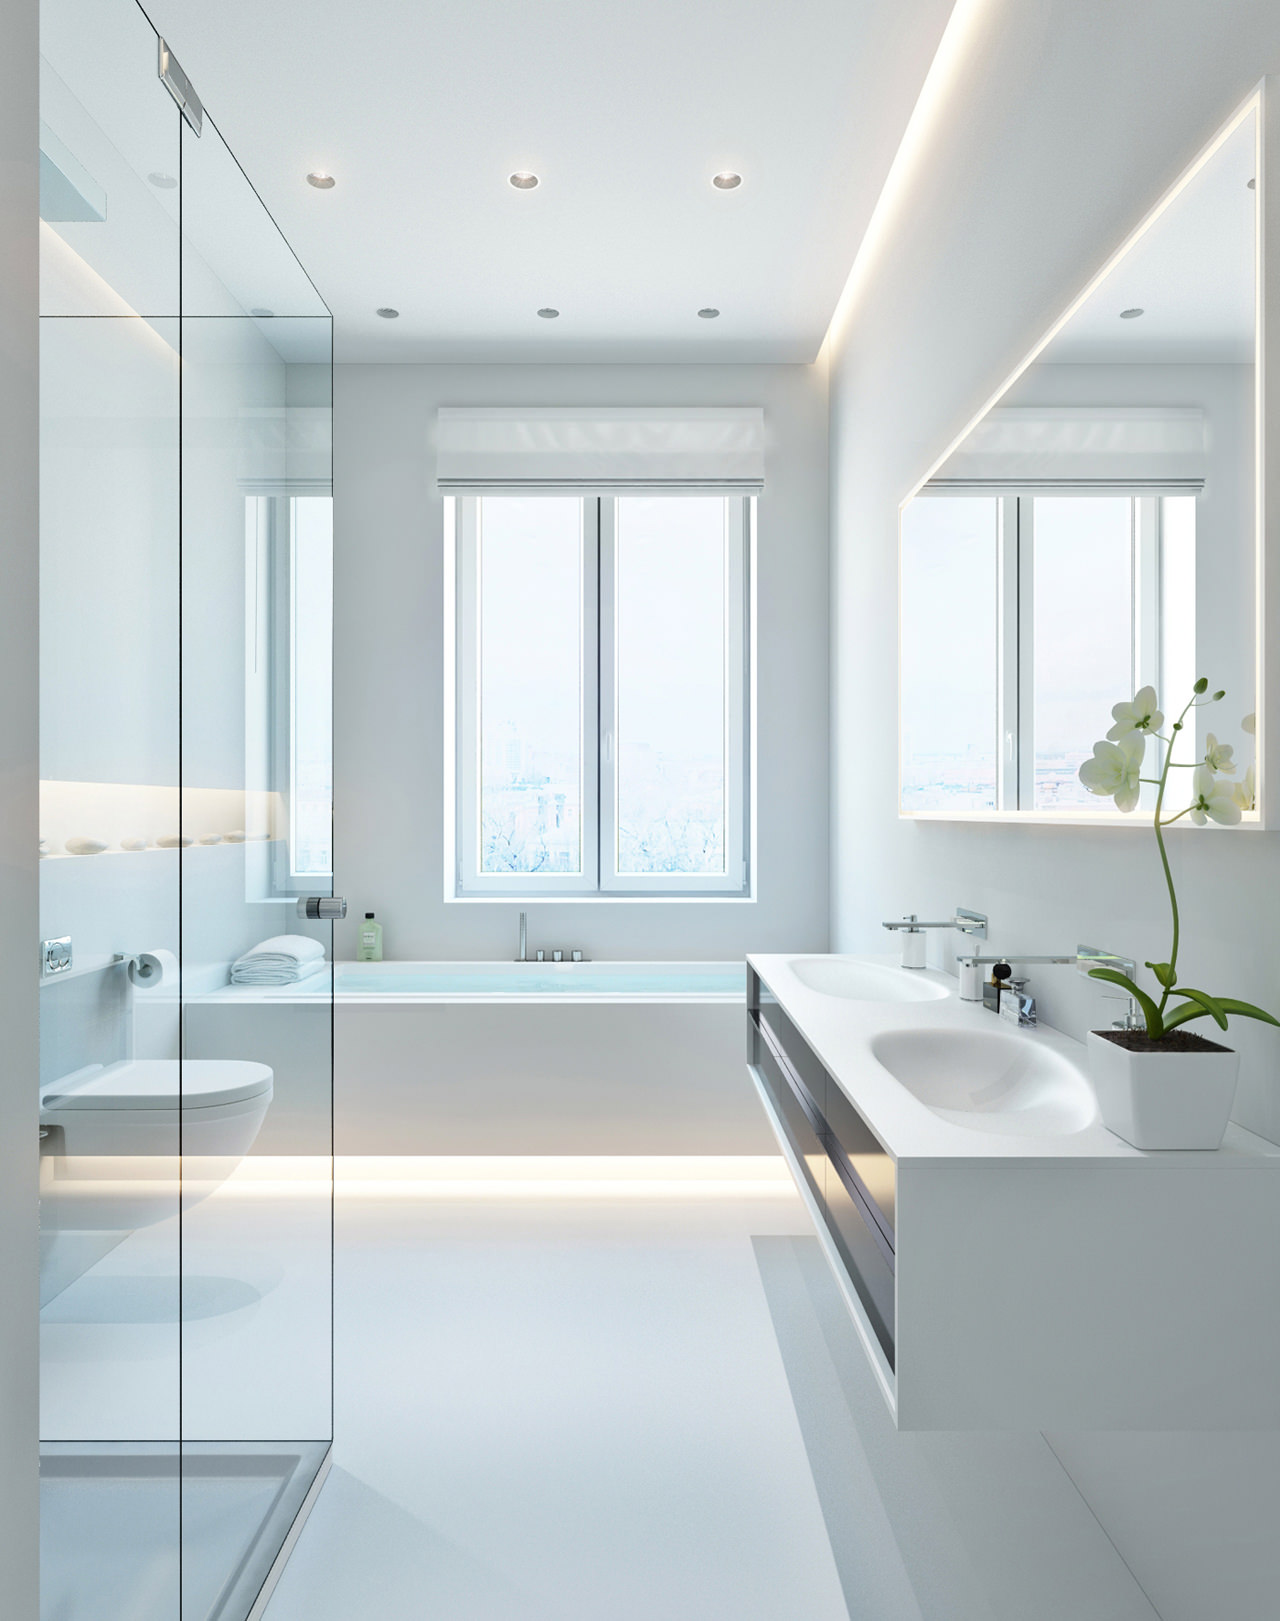 Modern white bathroom interior design ideas for Bathroom interior design white